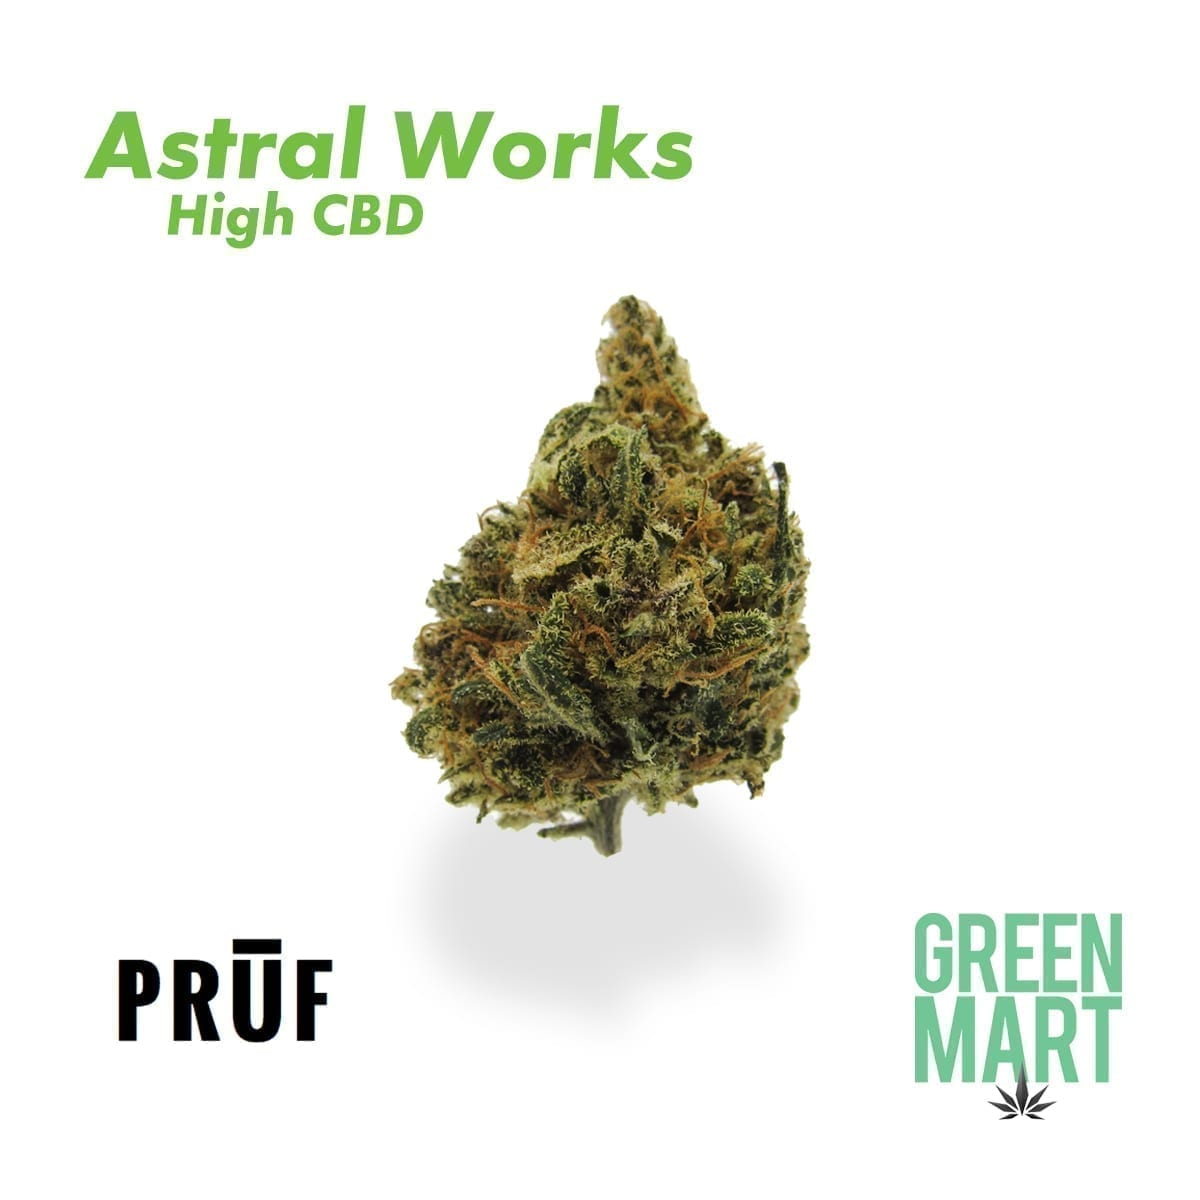 Astral Works - High CBD